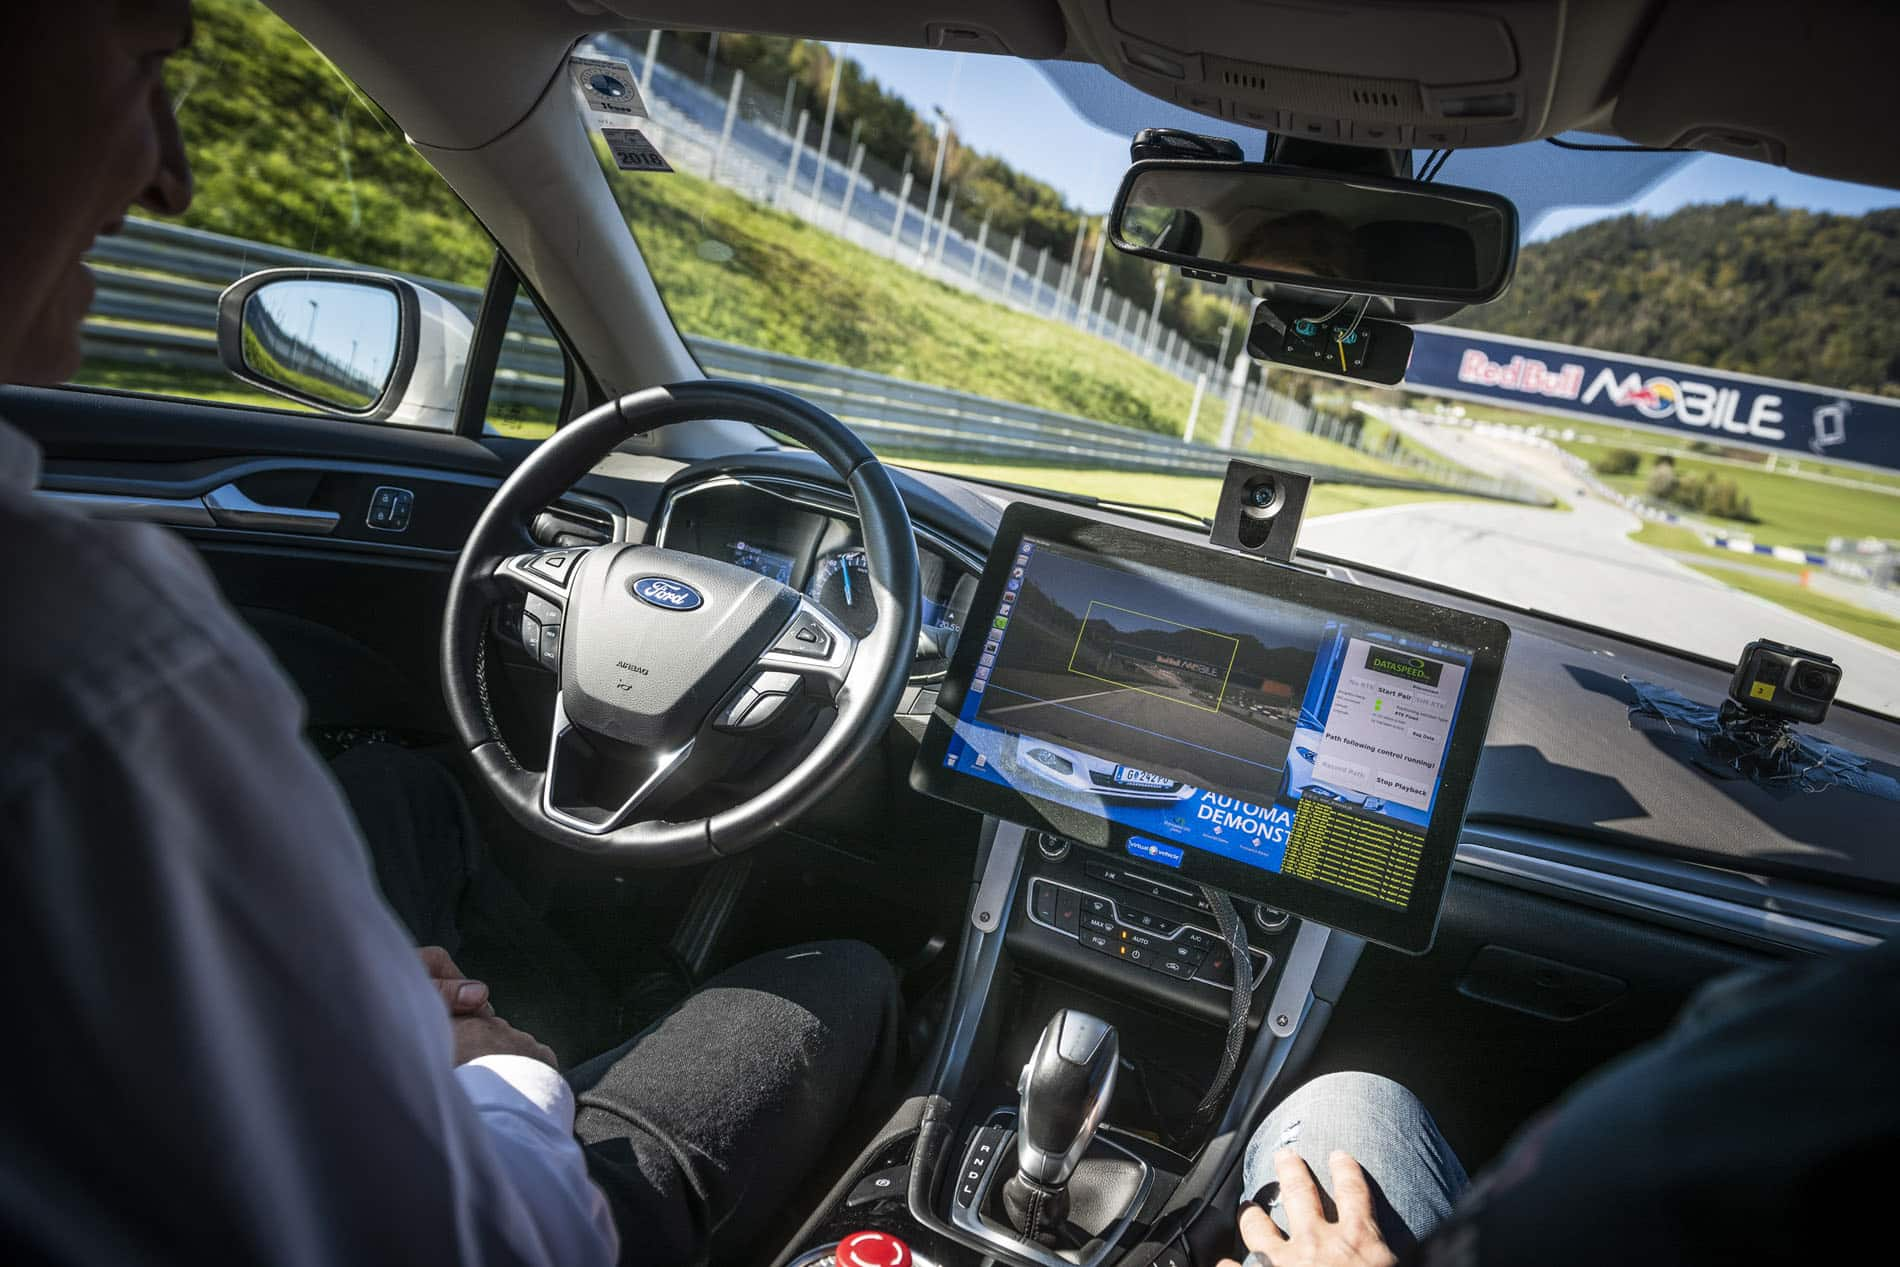 E-MOBILITY PLAY DAYS 2018 LOCKTEN 39.500 BESUCHER AN! » E Mobility Play Days 2018 virtual vehicle © Philip Platzer Red Bull Content Pool